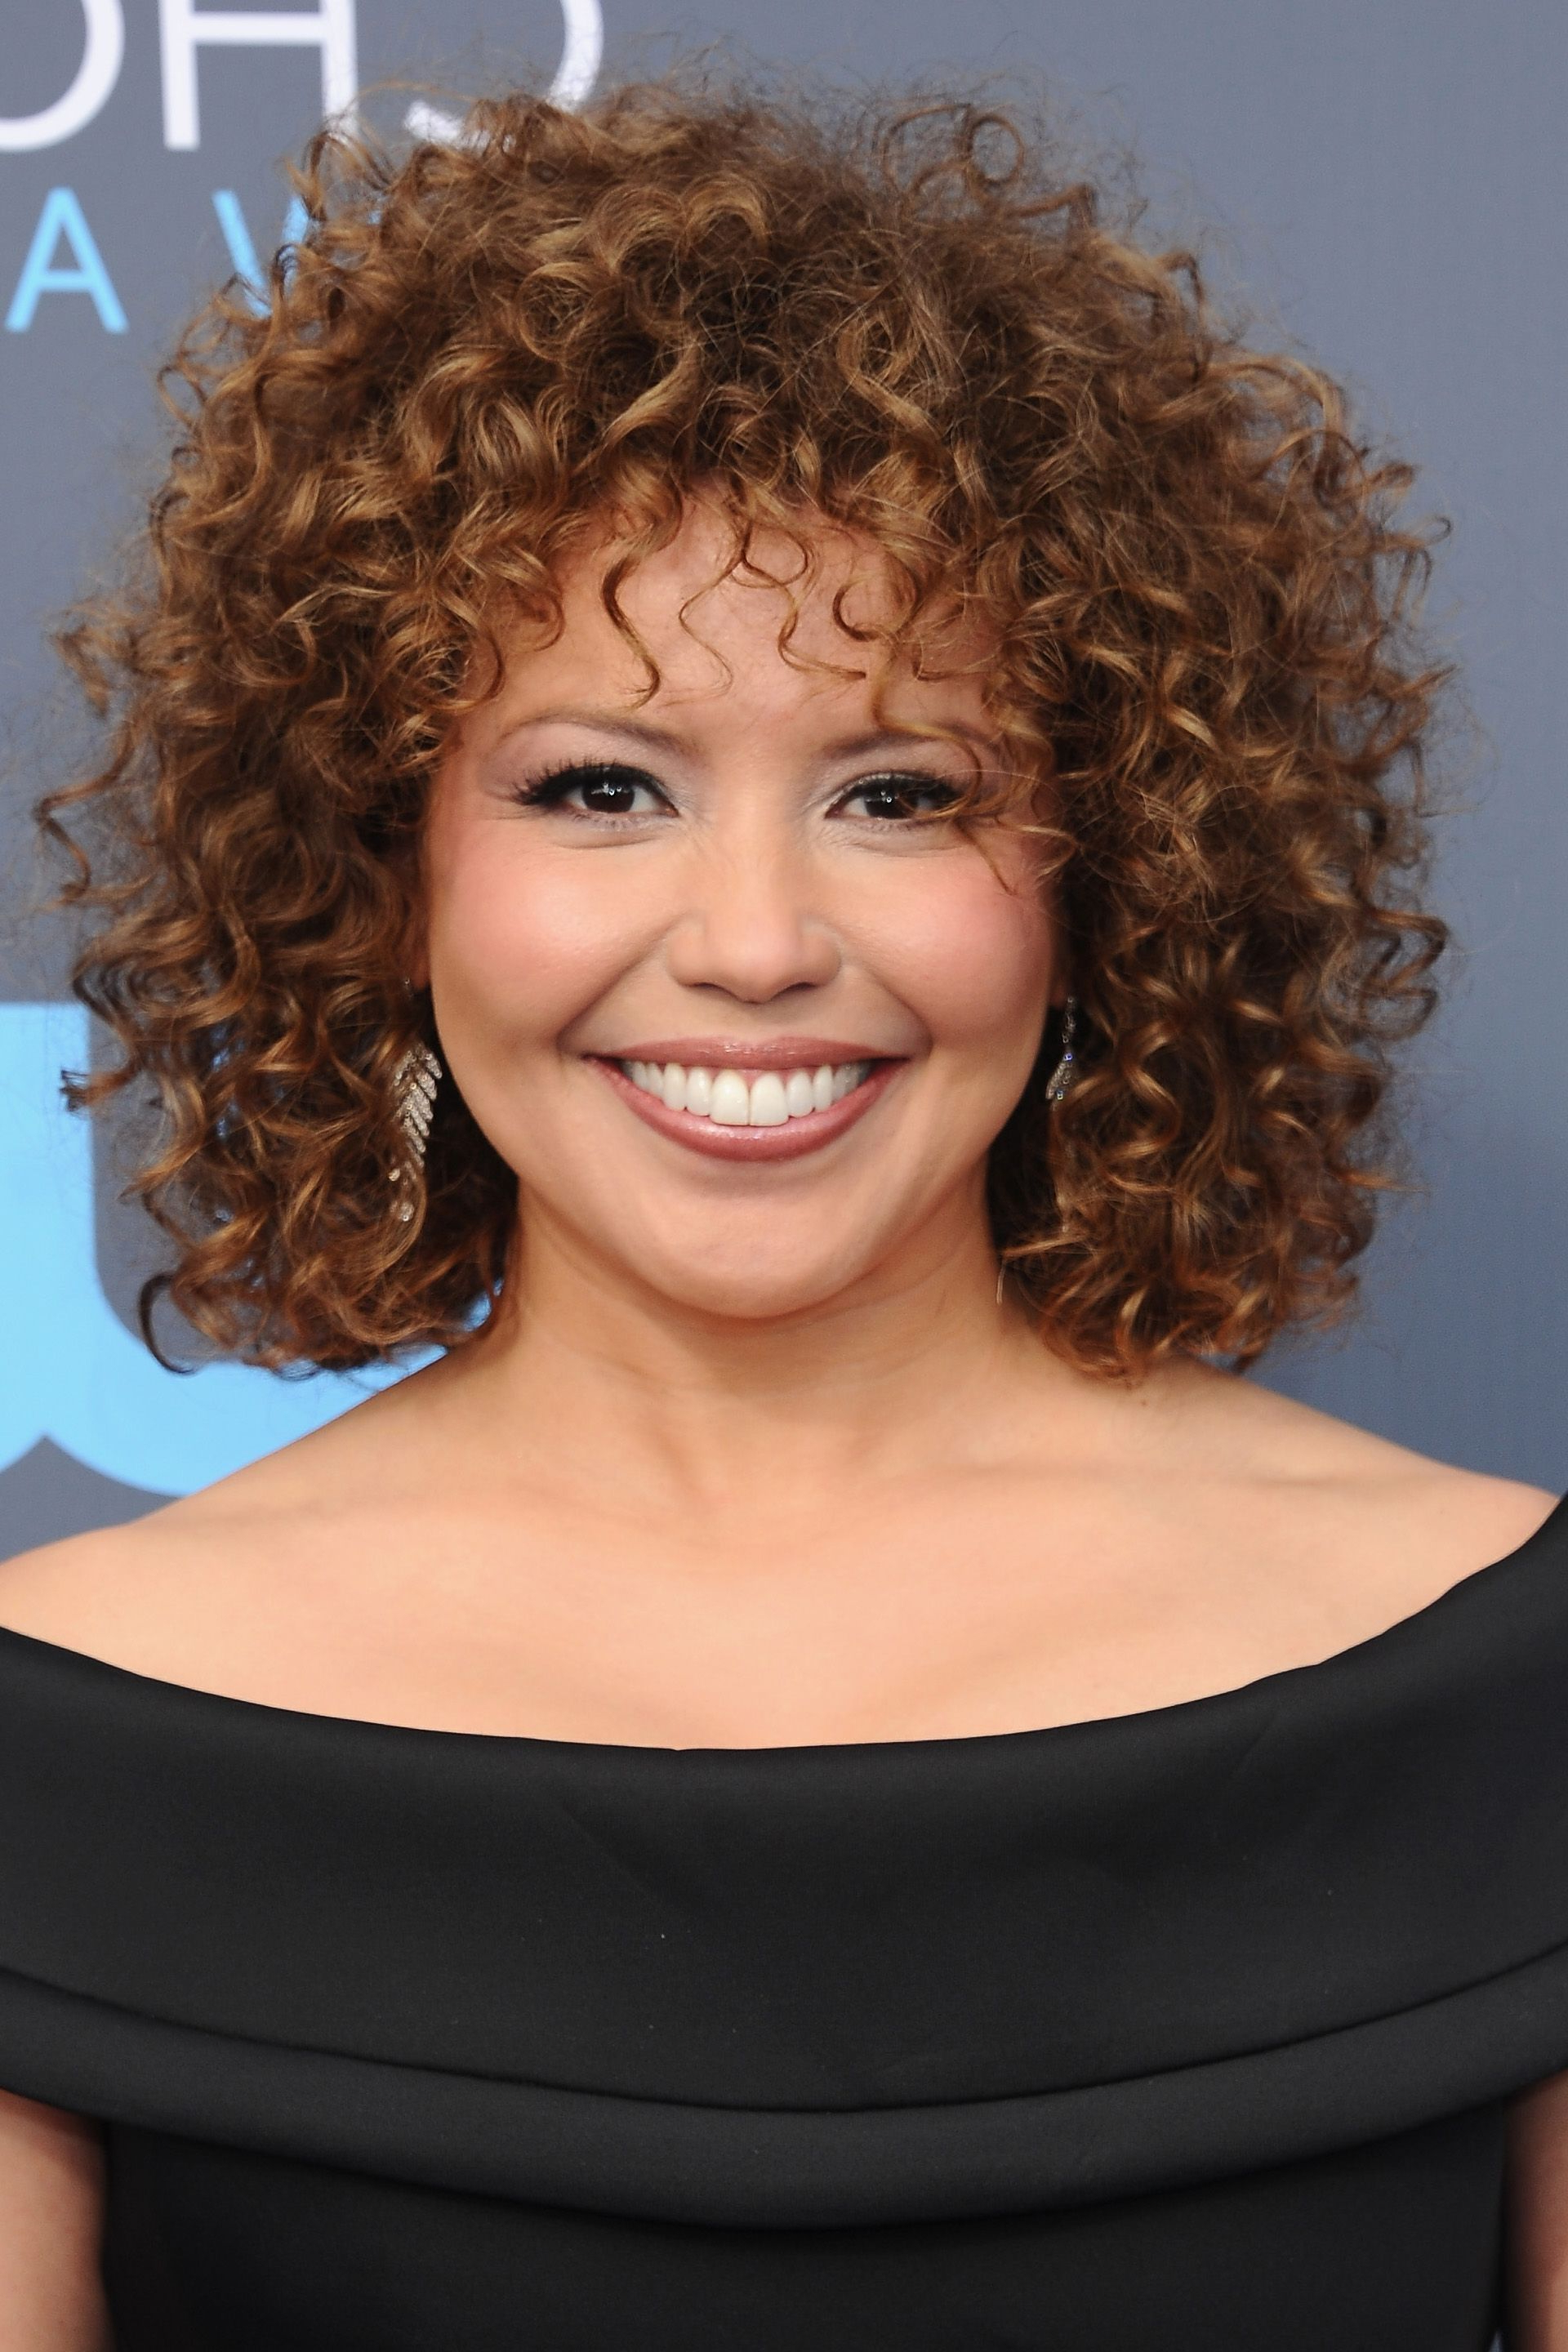 20 Celebrity Short Curly Hair Ideas – Short Haircuts And Hairstyles With Regard To Short Wavy Haircuts With Messy Layers (View 18 of 20)